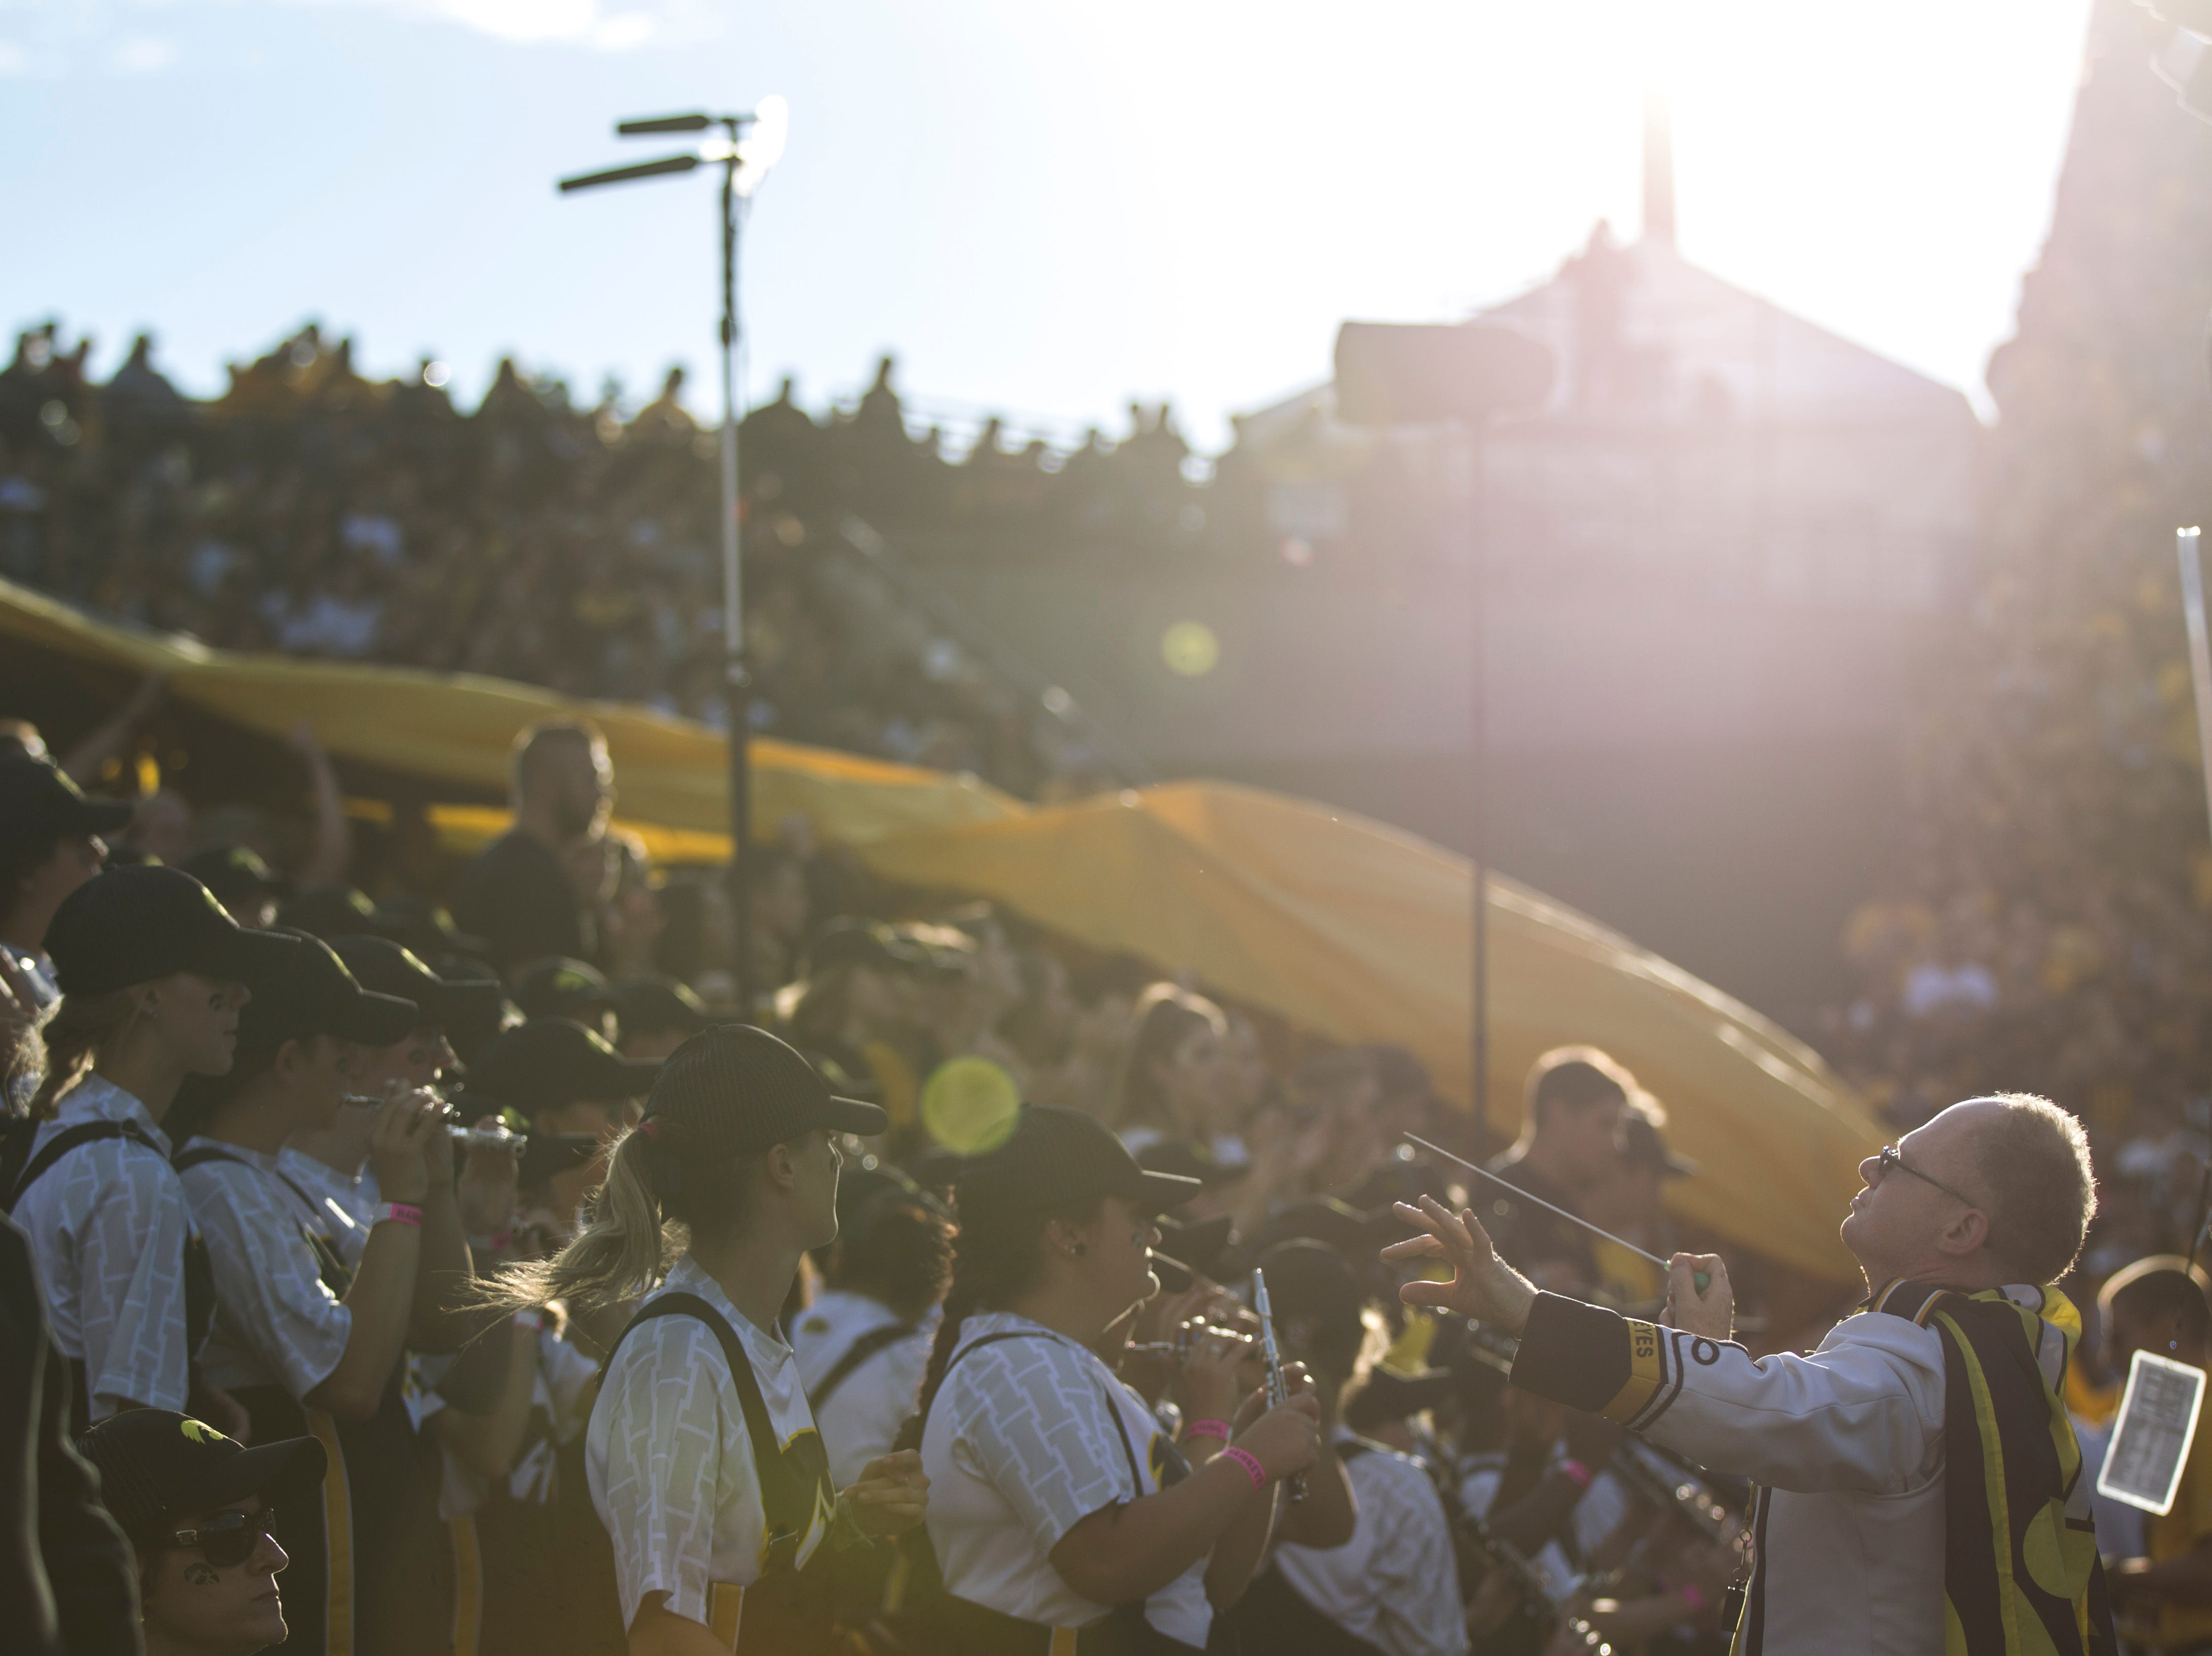 Members of the Iowa Hawkeye marching band perform during the Cy-Hawk NCAA football game on Saturday, Sept. 8, 2018, at Kinnick Stadium in Iowa City.